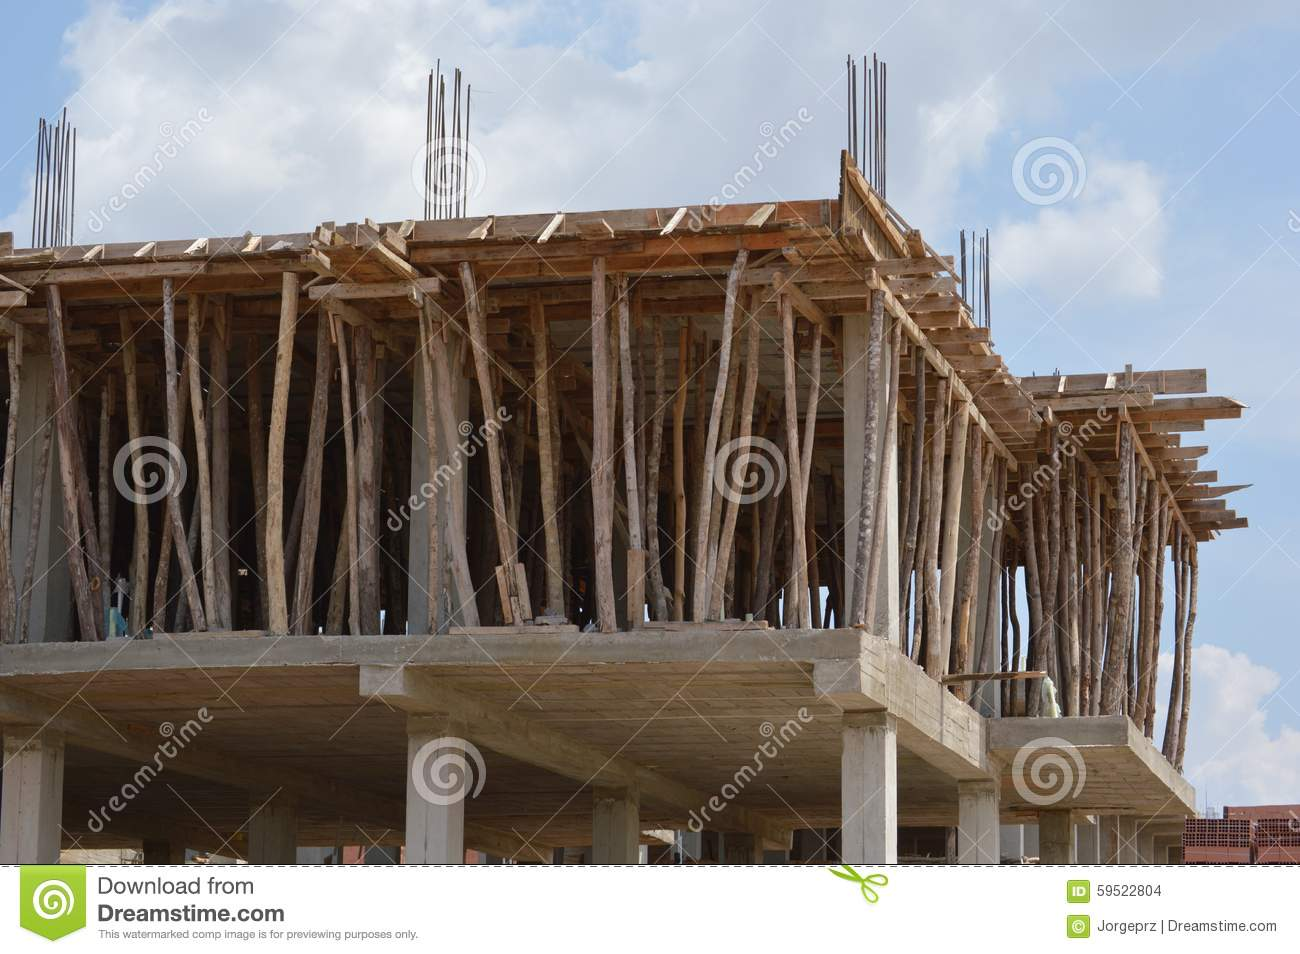 Home building construction stock photo image of for Concrete home construction